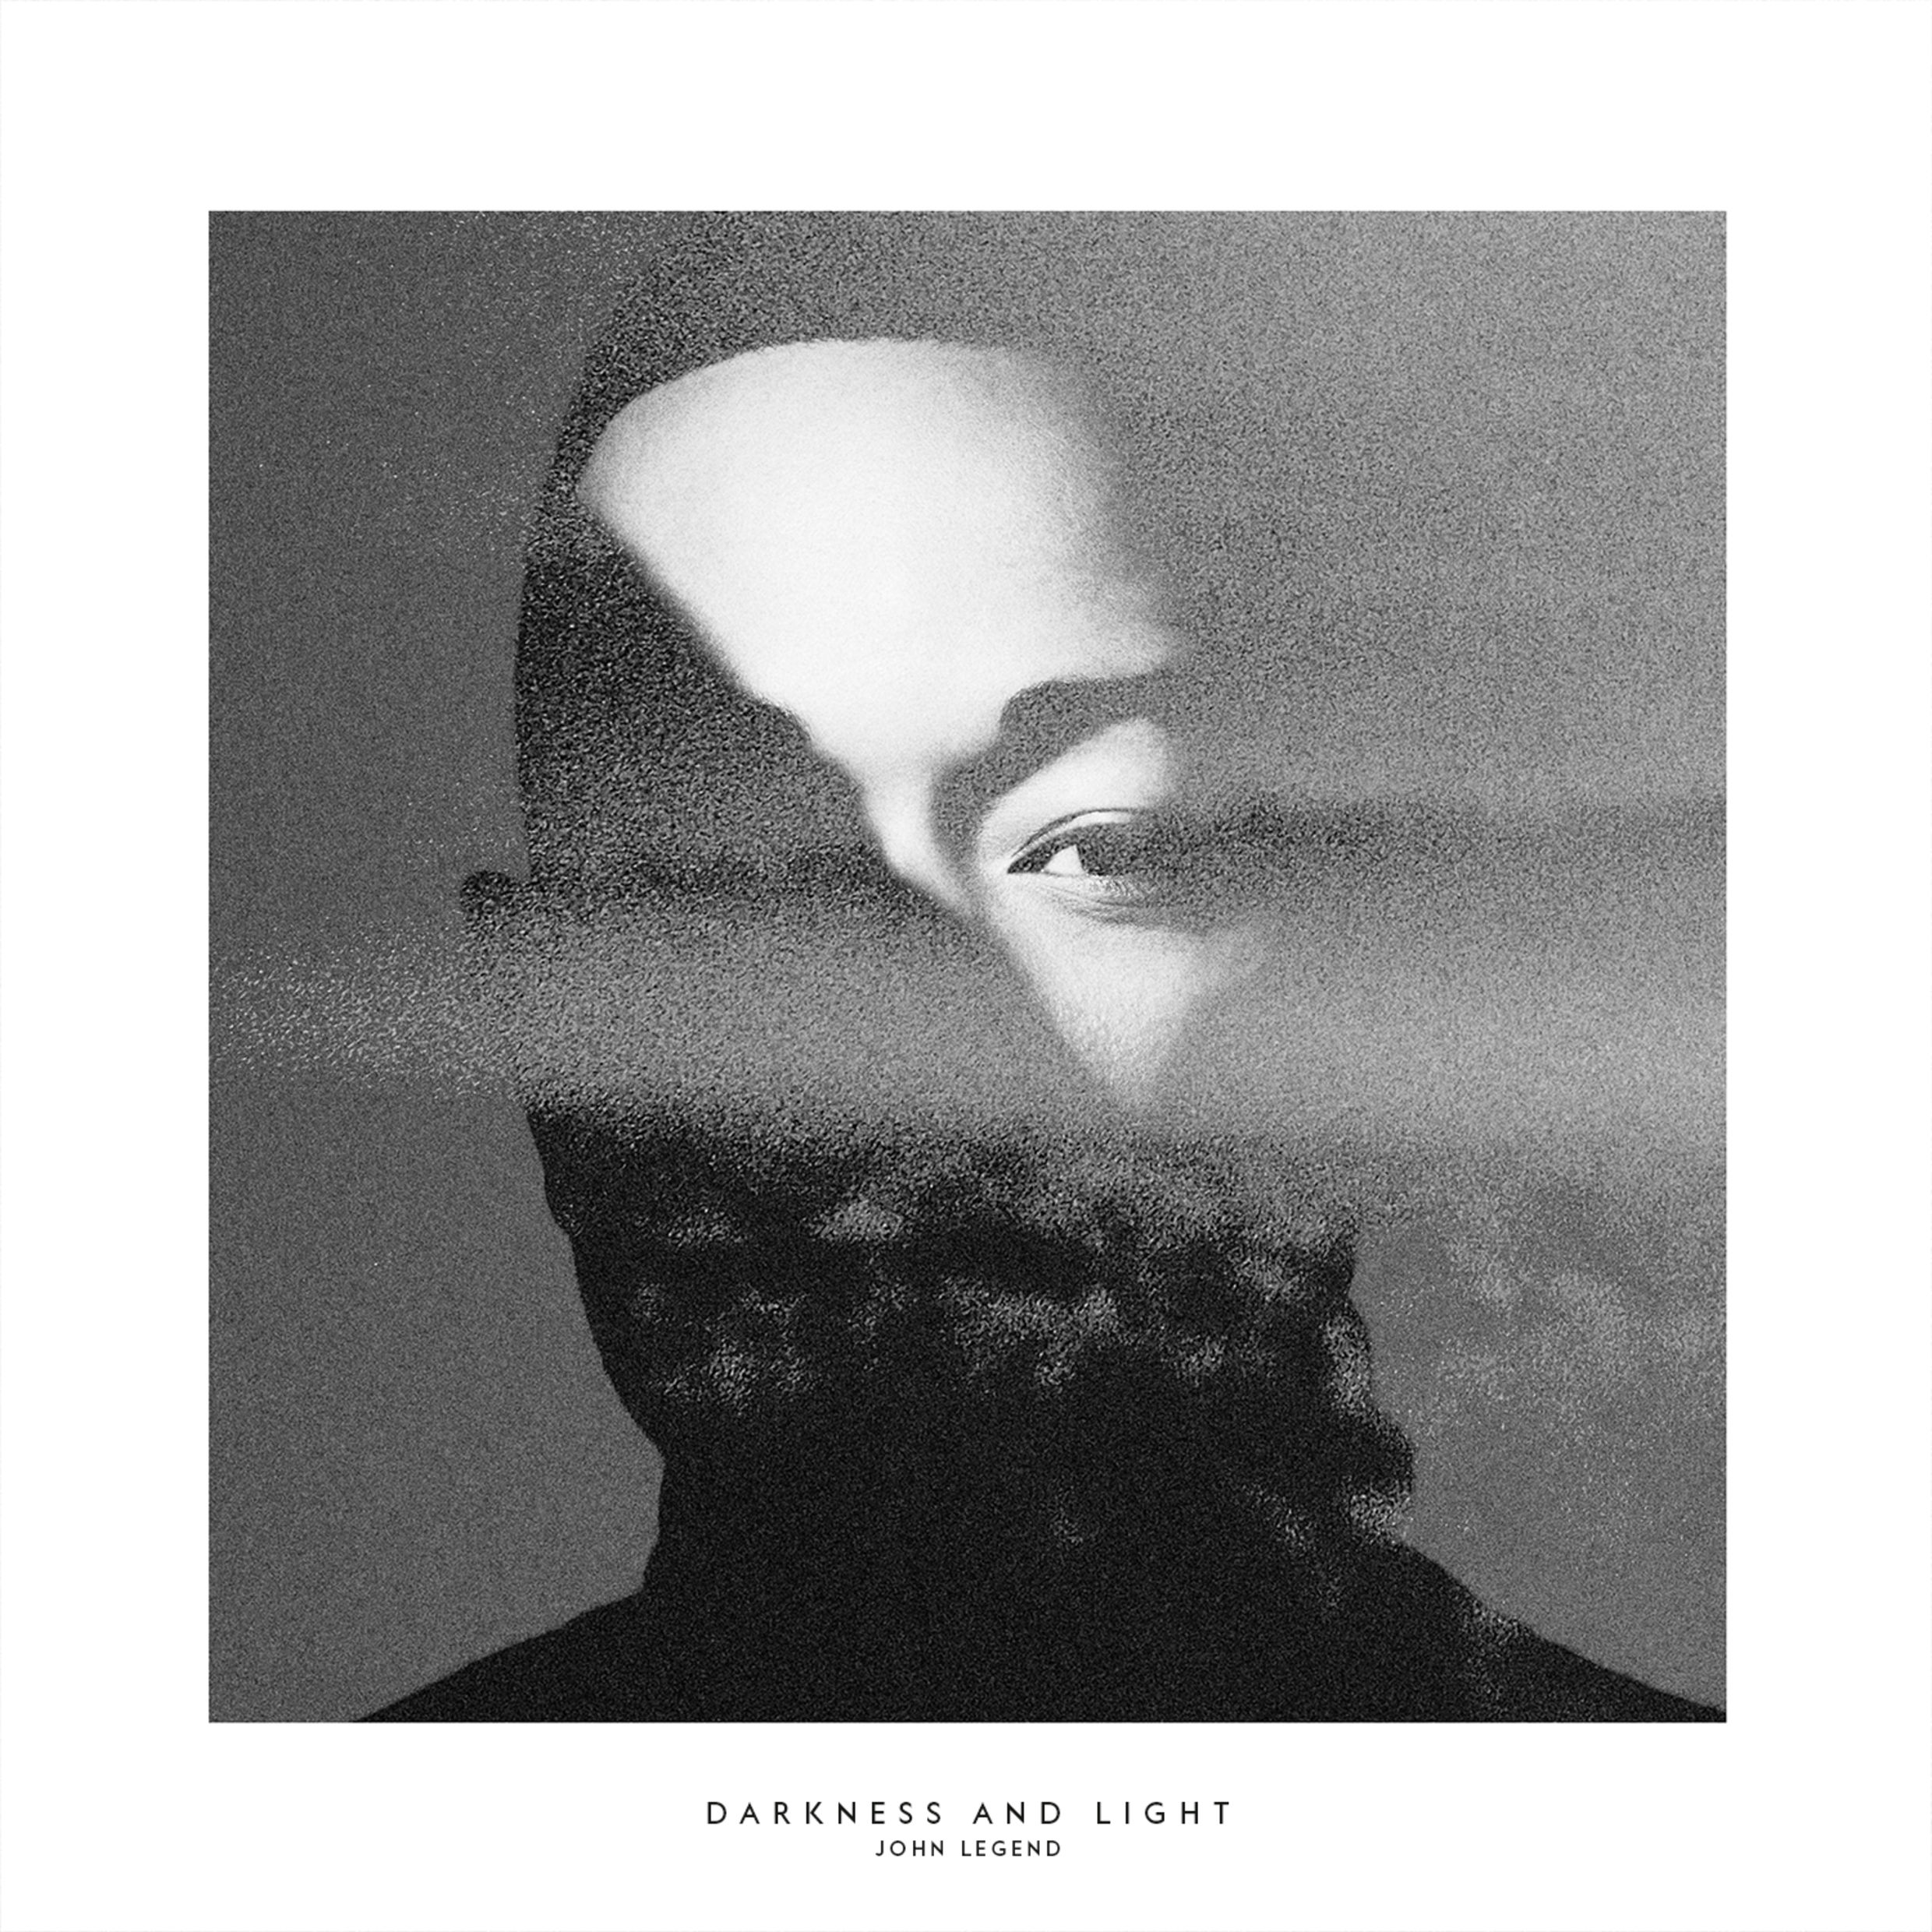 john-legend-darkness-and-light-2016-2480x2480